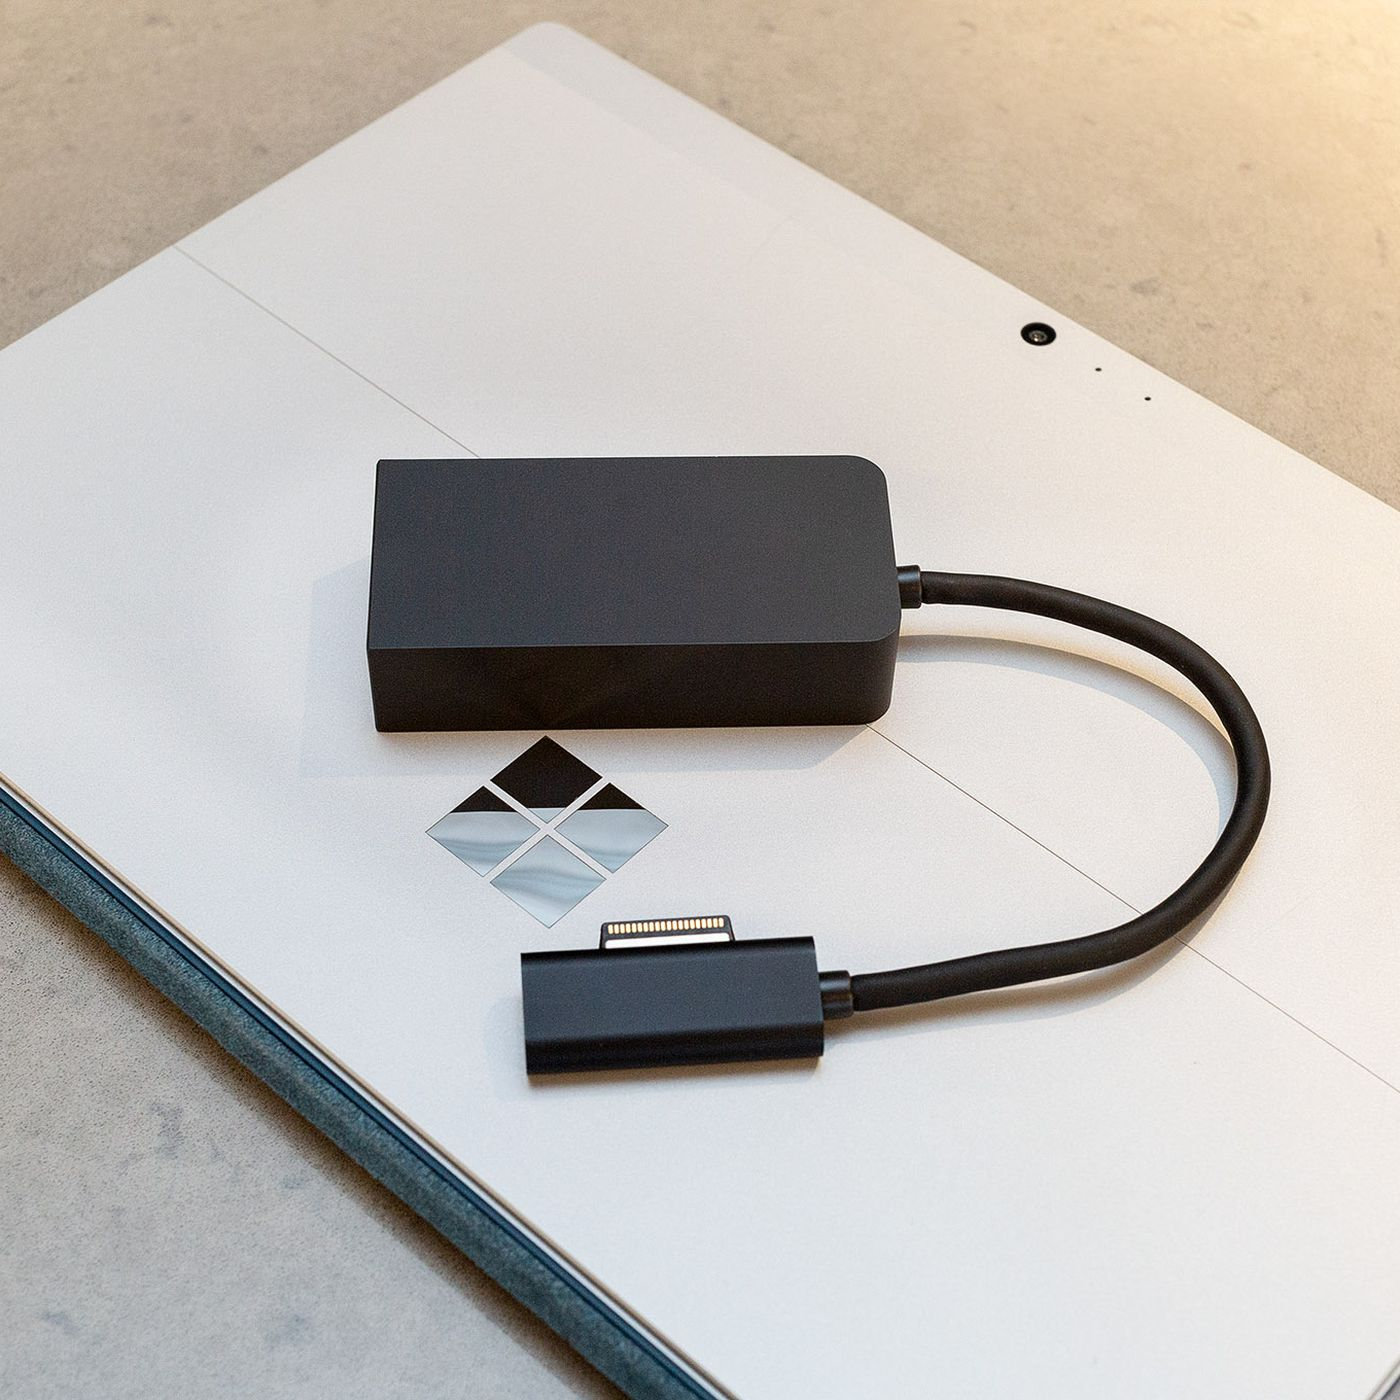 Three ways Microsoft could have made a better Surface USB-C ...